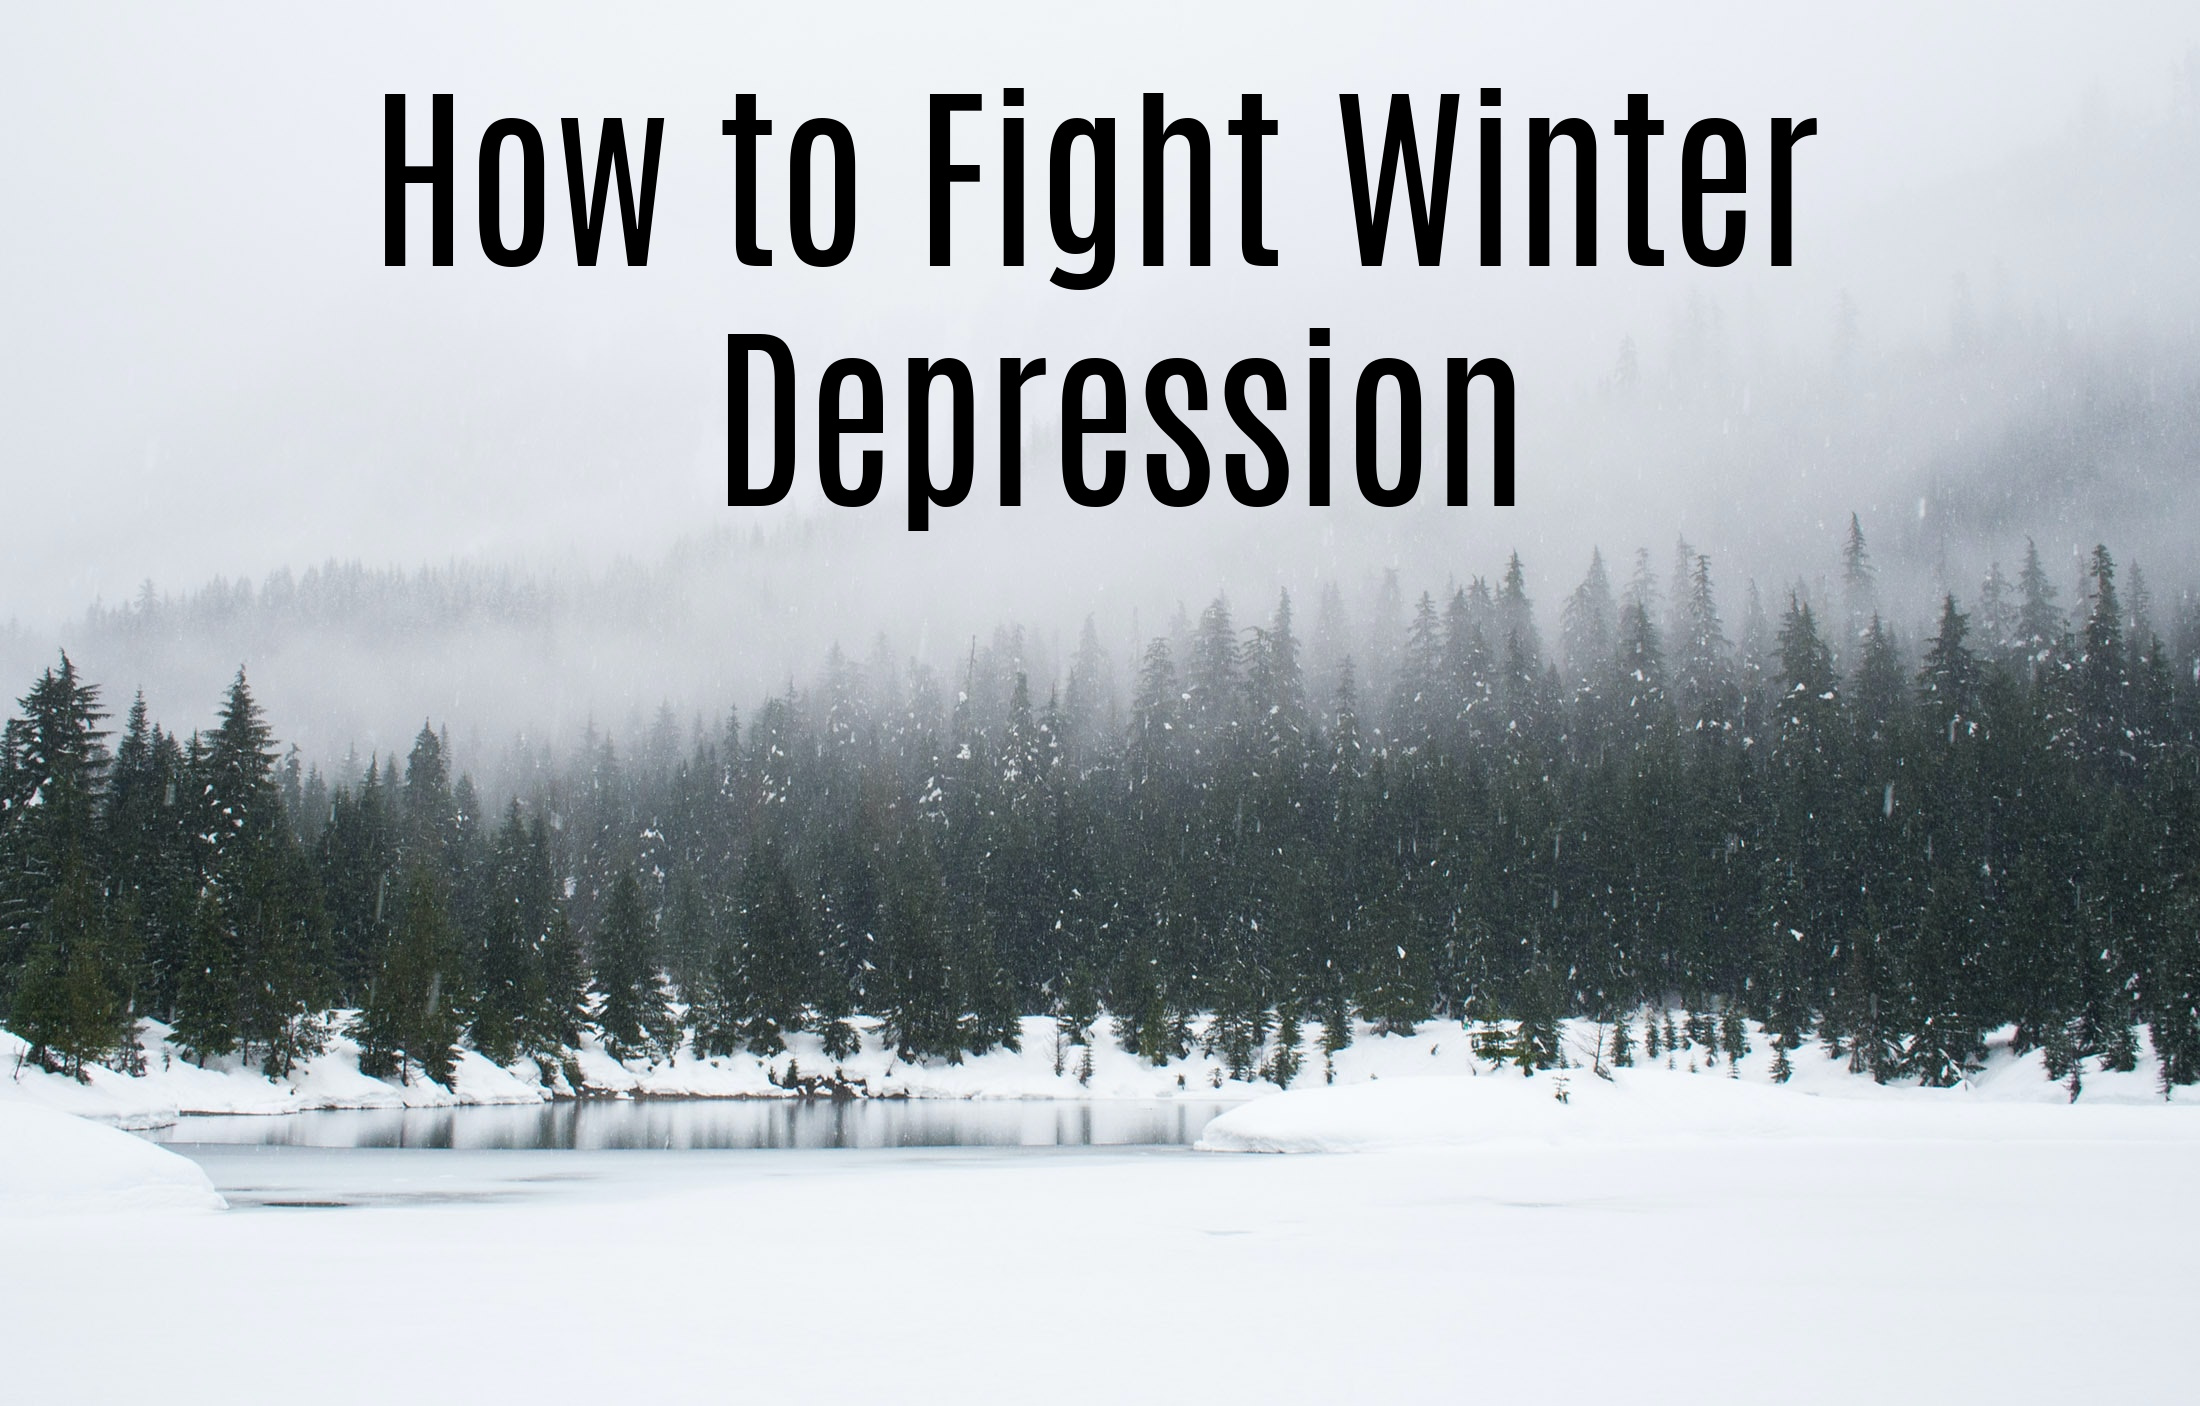 How to Fight Winter Depression